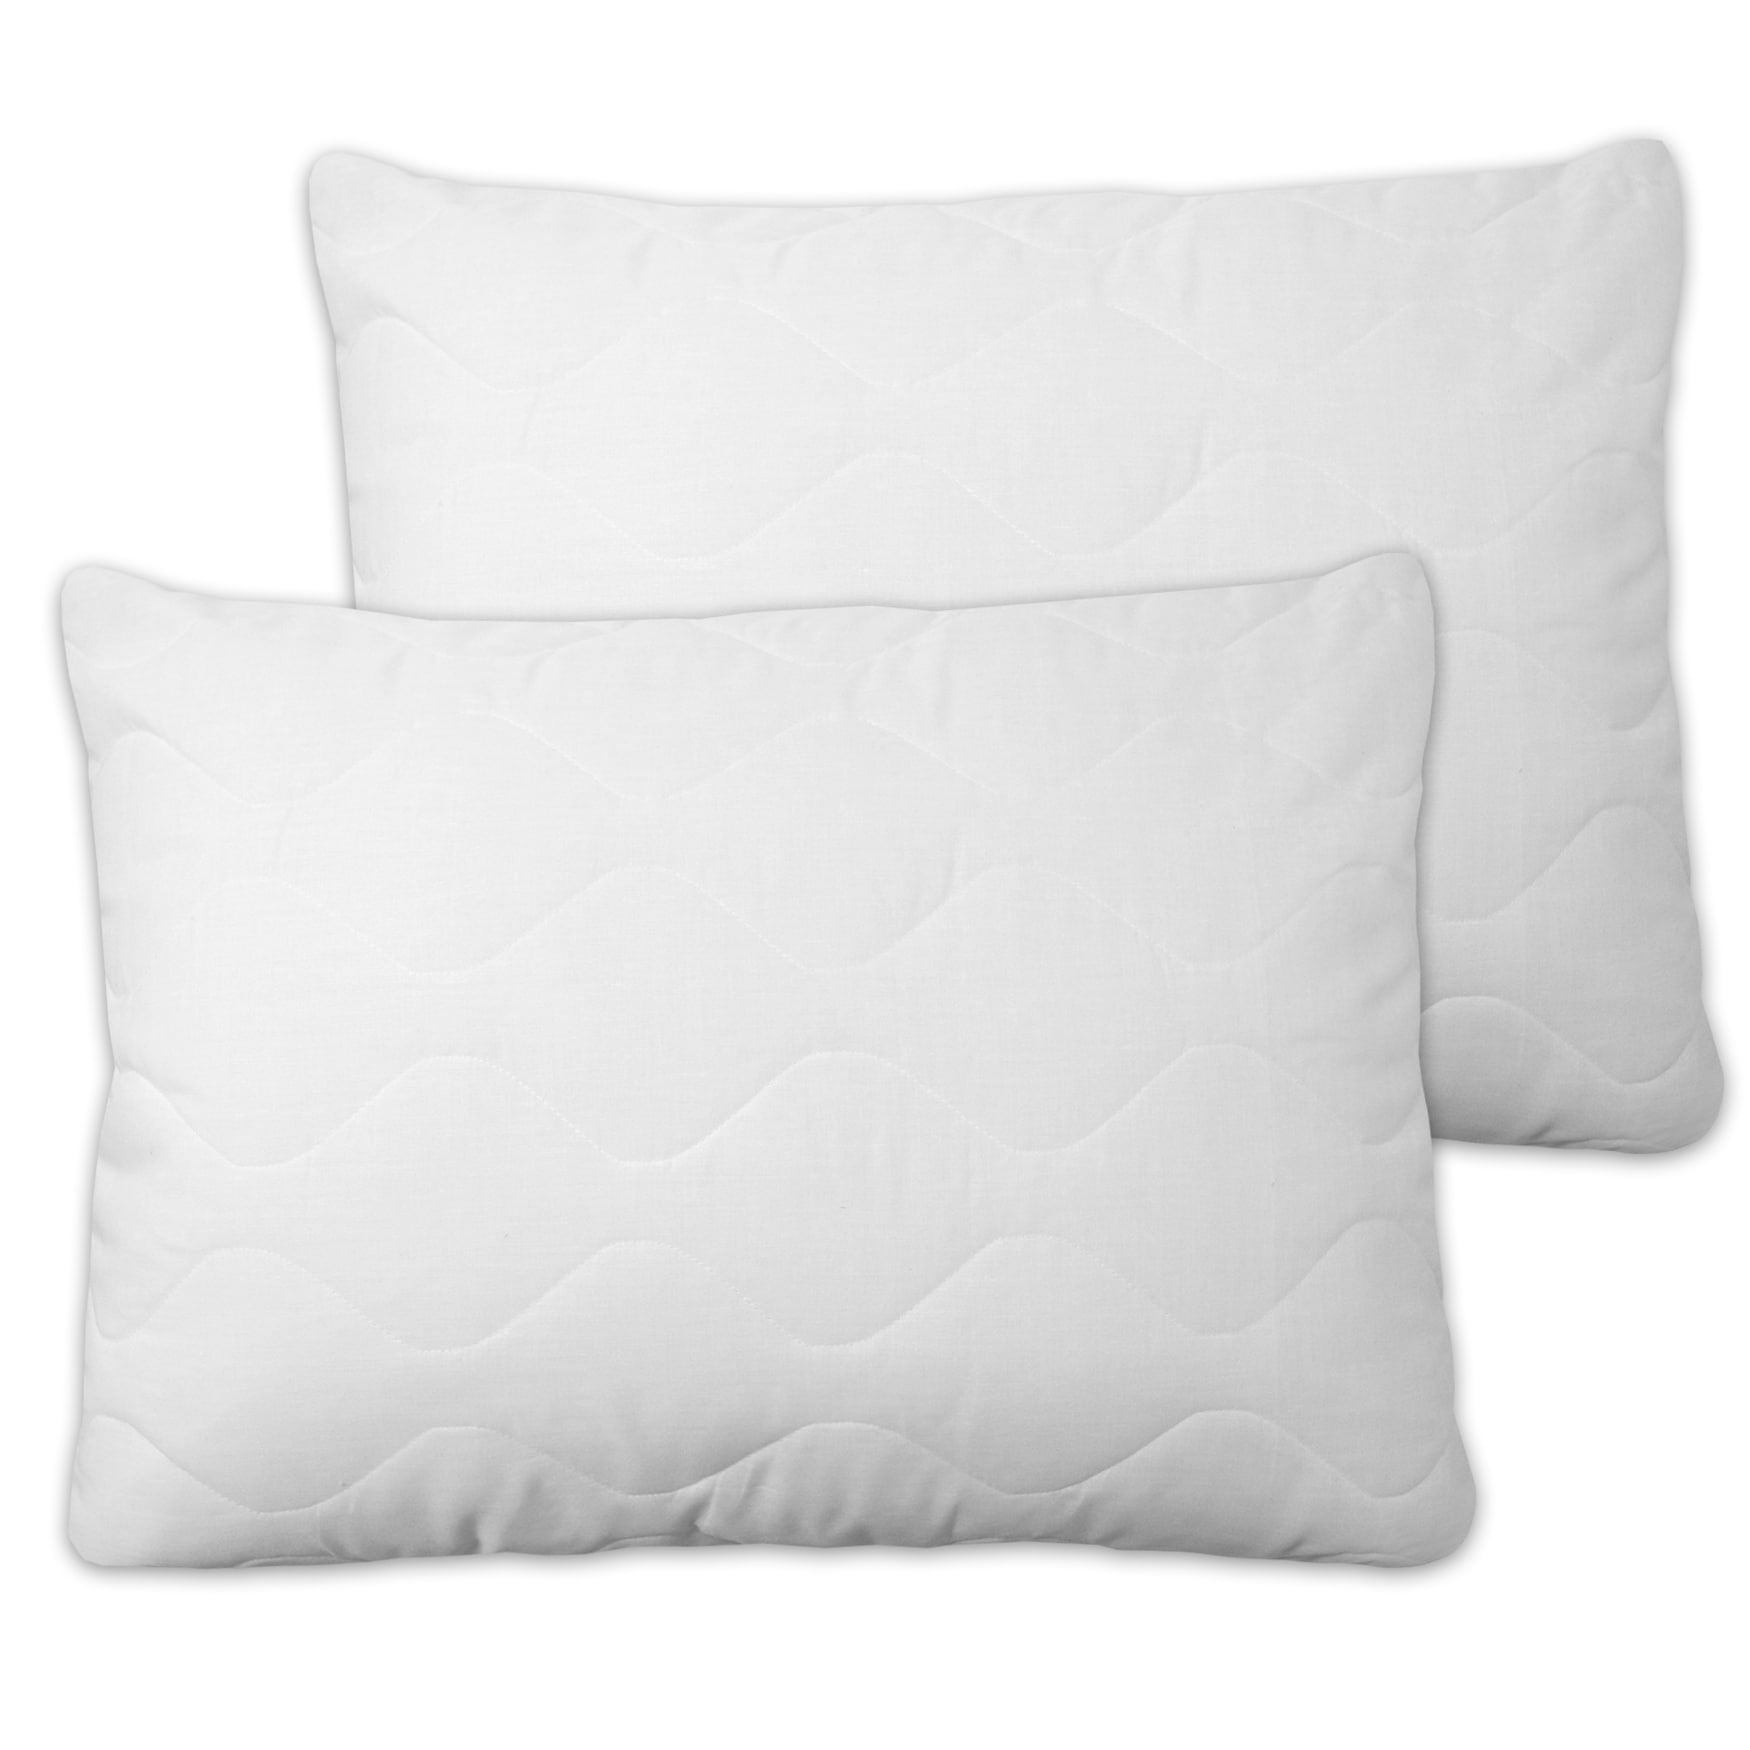 bed bath n more Quilted Pillow Protectors With Zipper (Set of 2) by Overstock